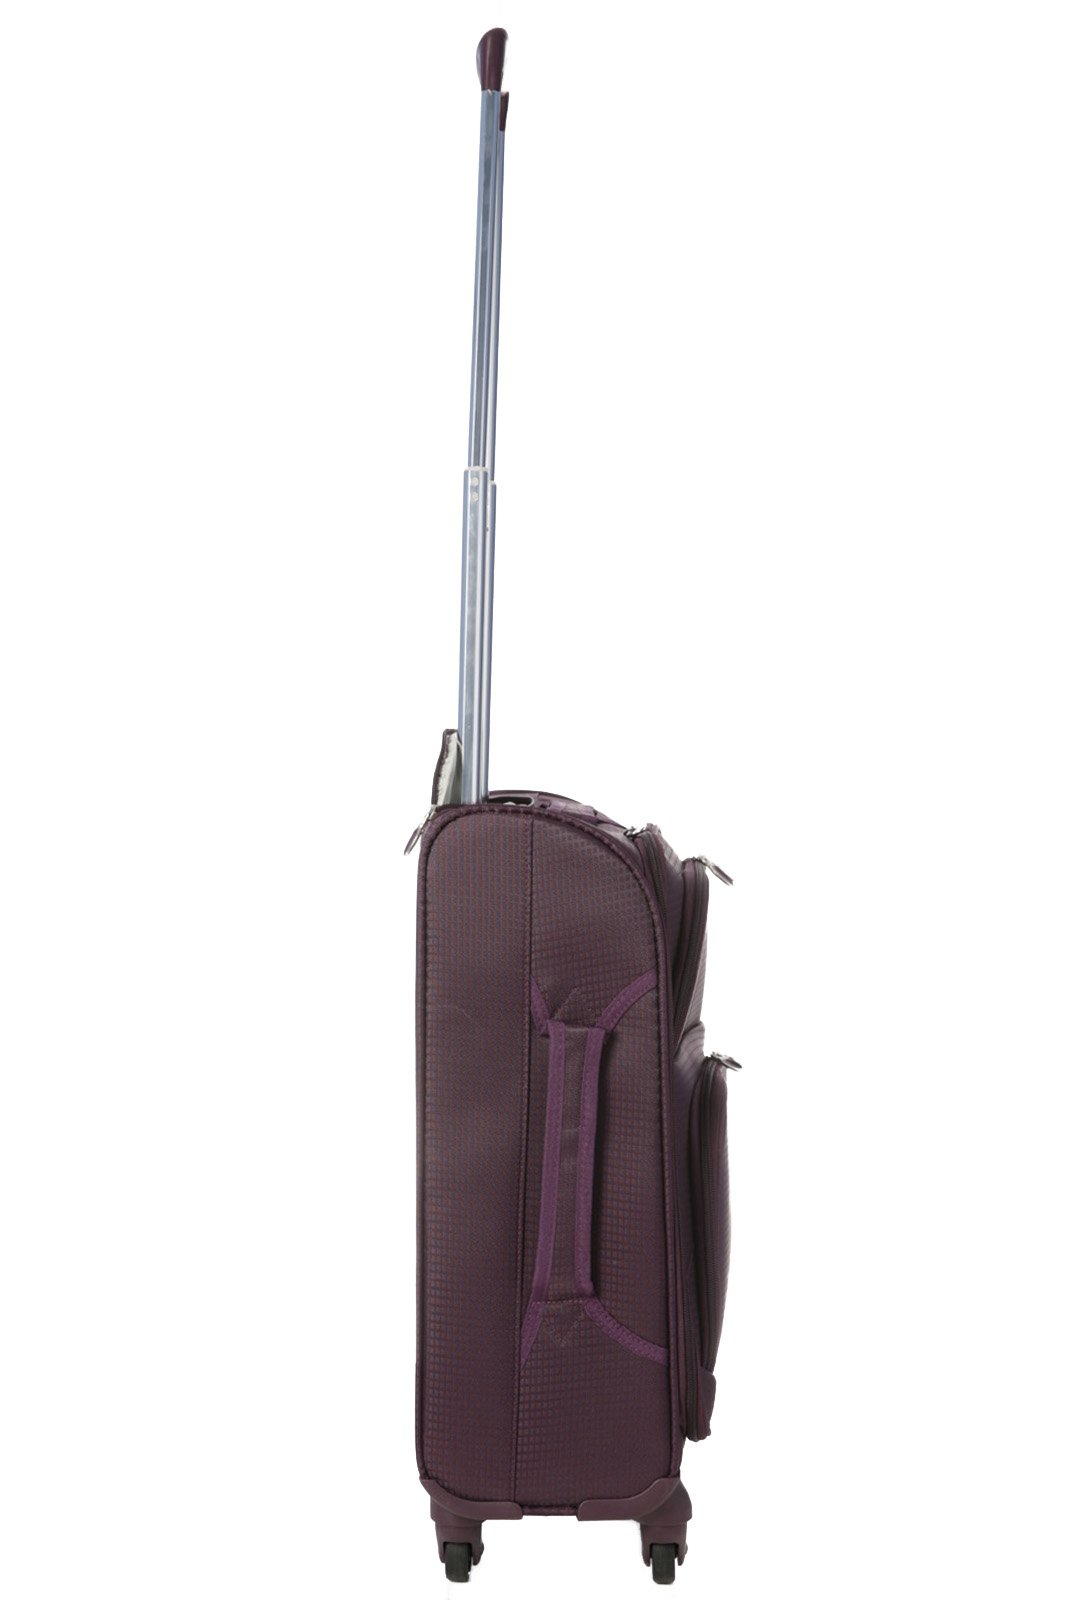 Aerolite 22x14x9 Quot Carry On Max Lightweight Upright Travel